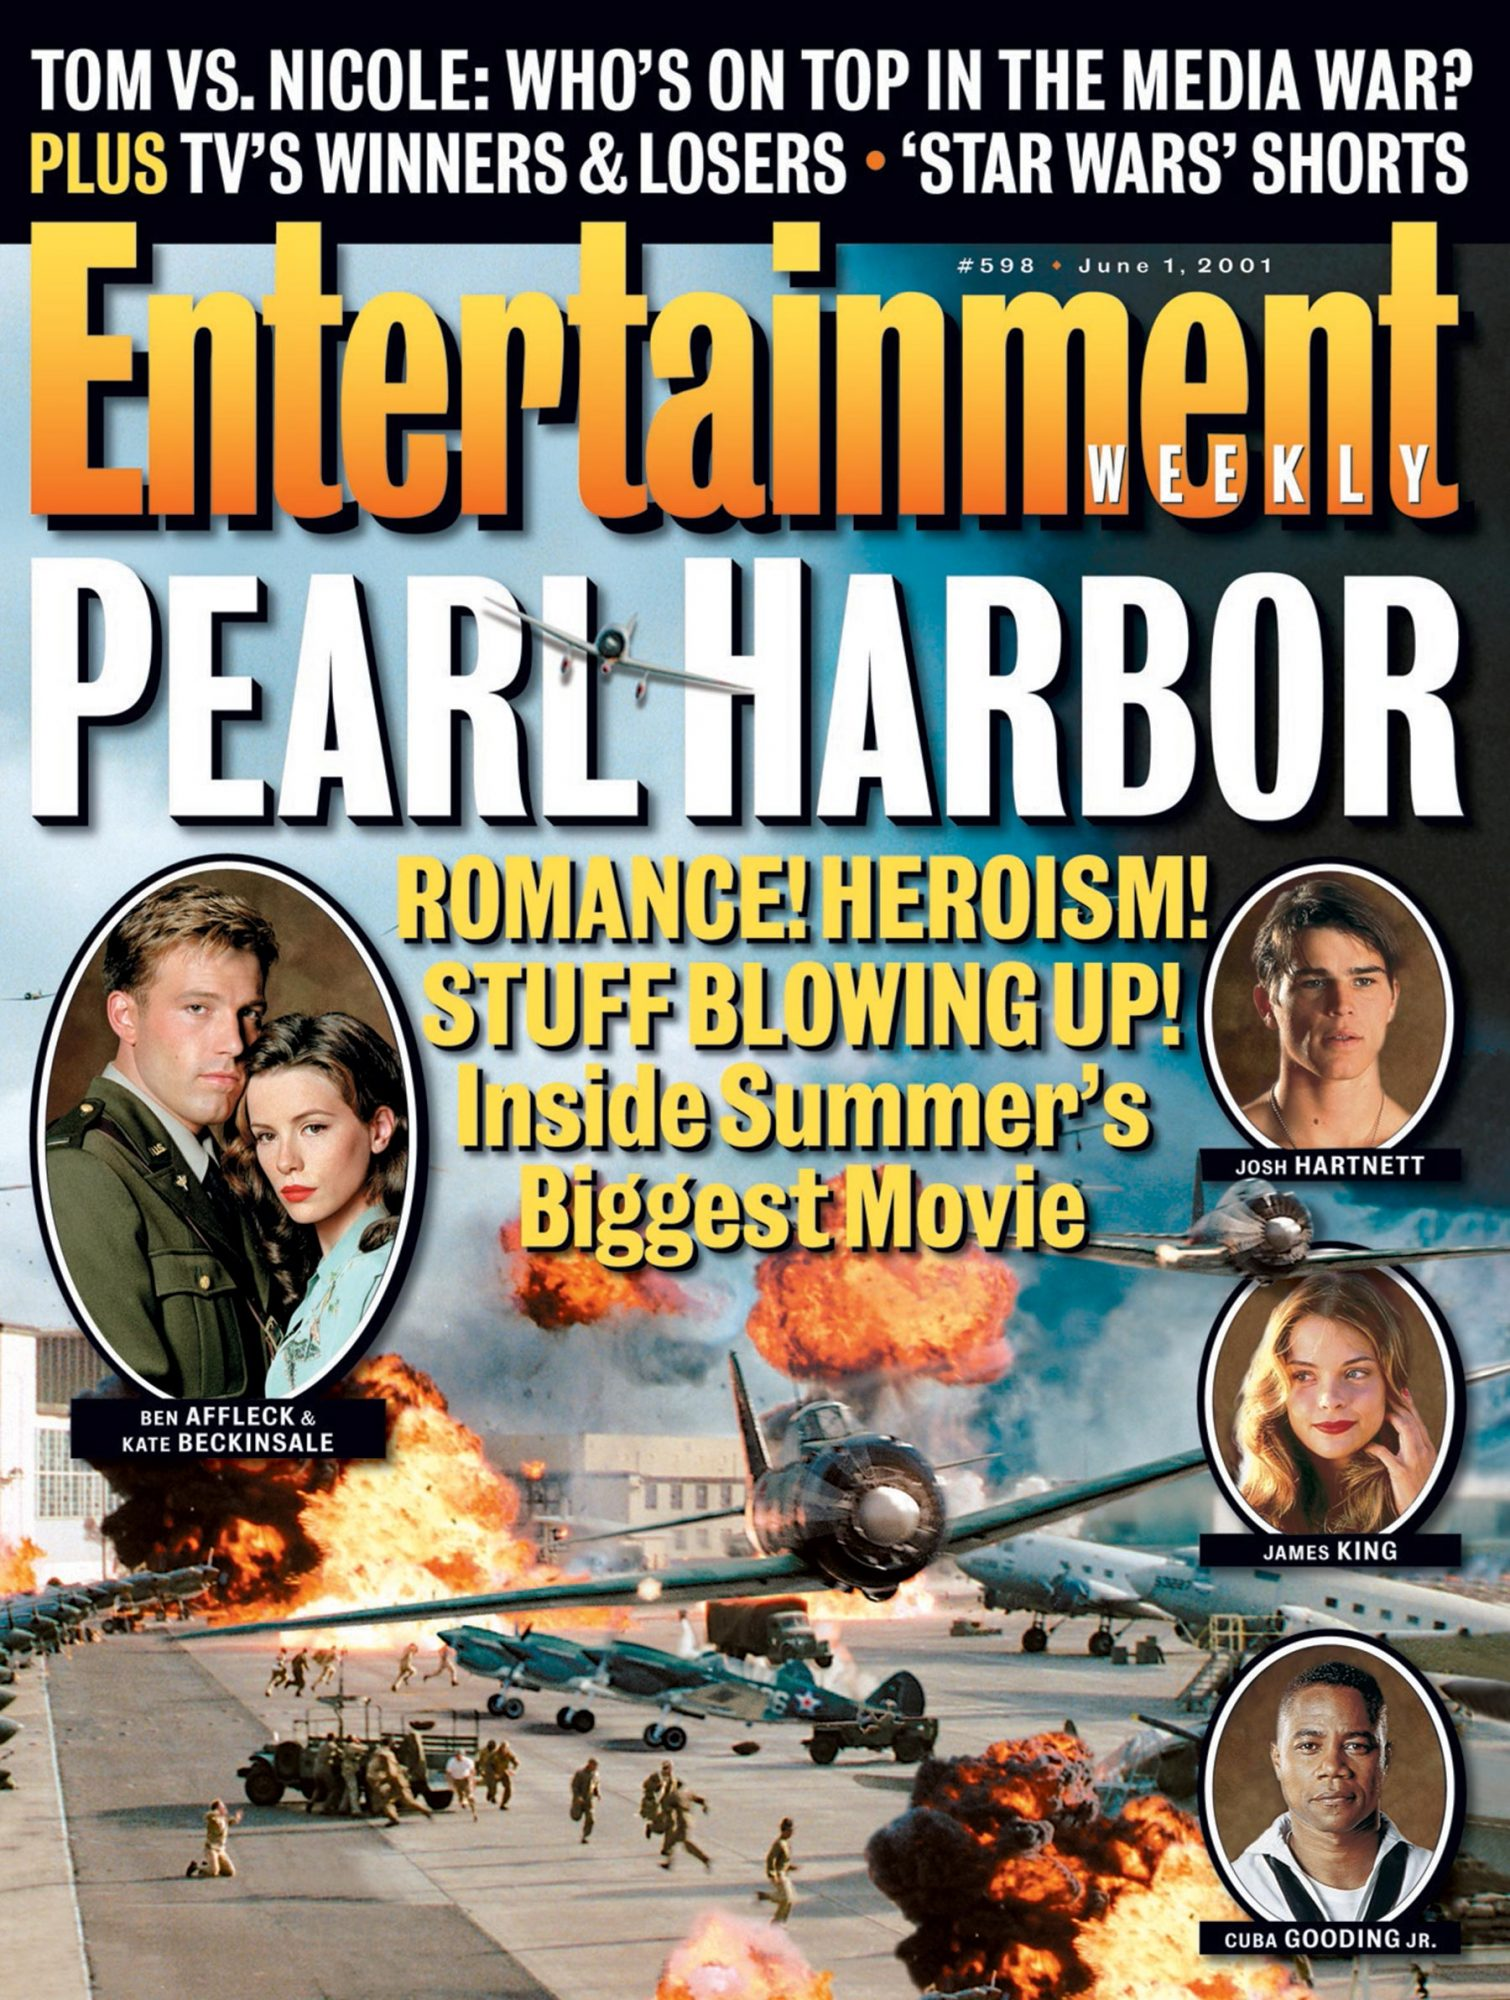 Entertainment WeeklyPearl HarborJUN 01, 2001Issue #598